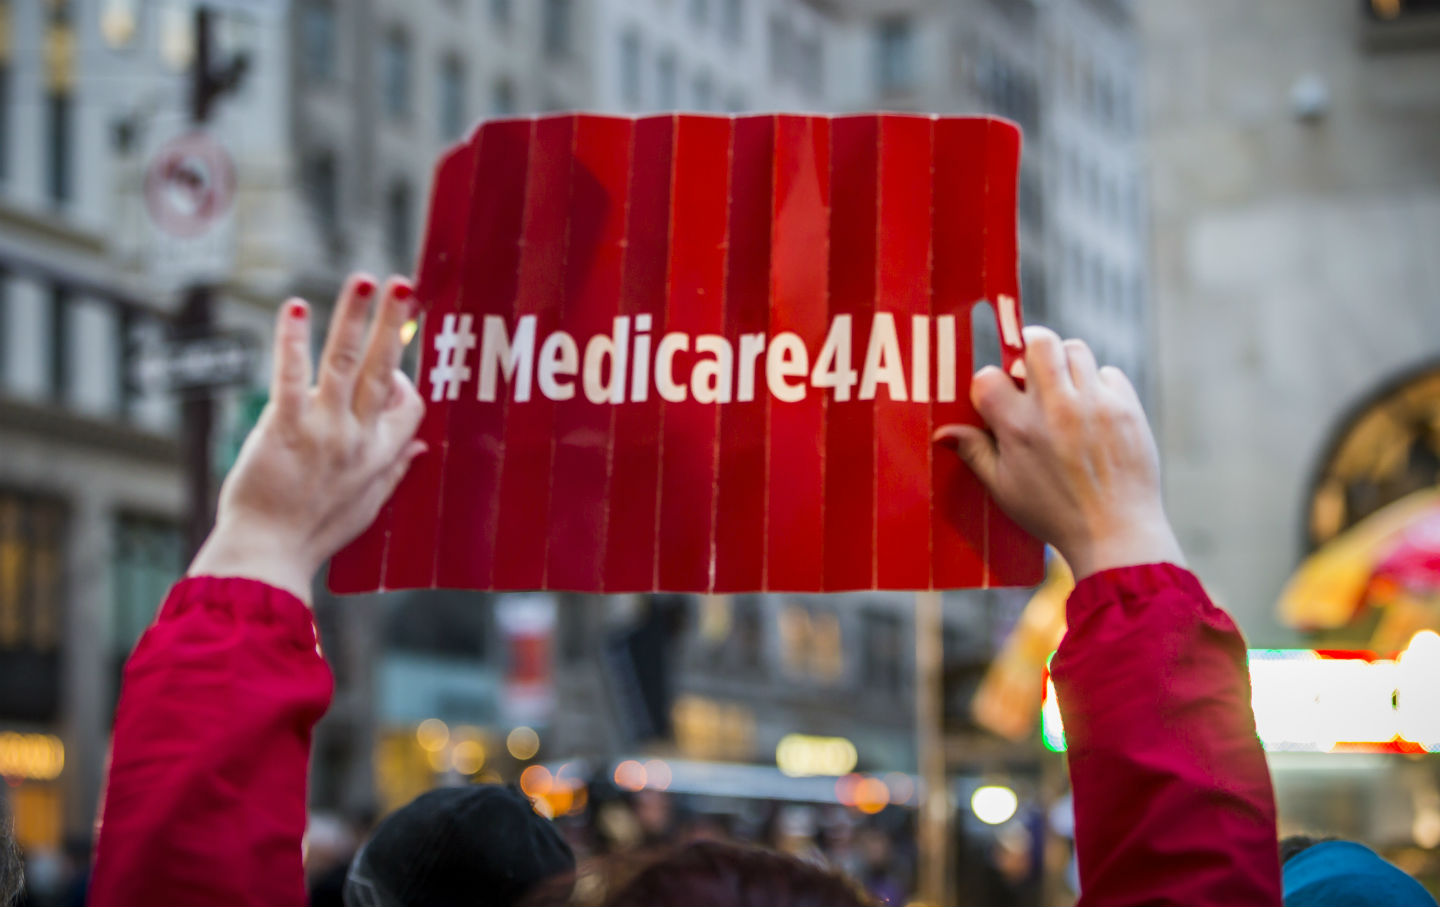 Medicare for all at Trump Tower